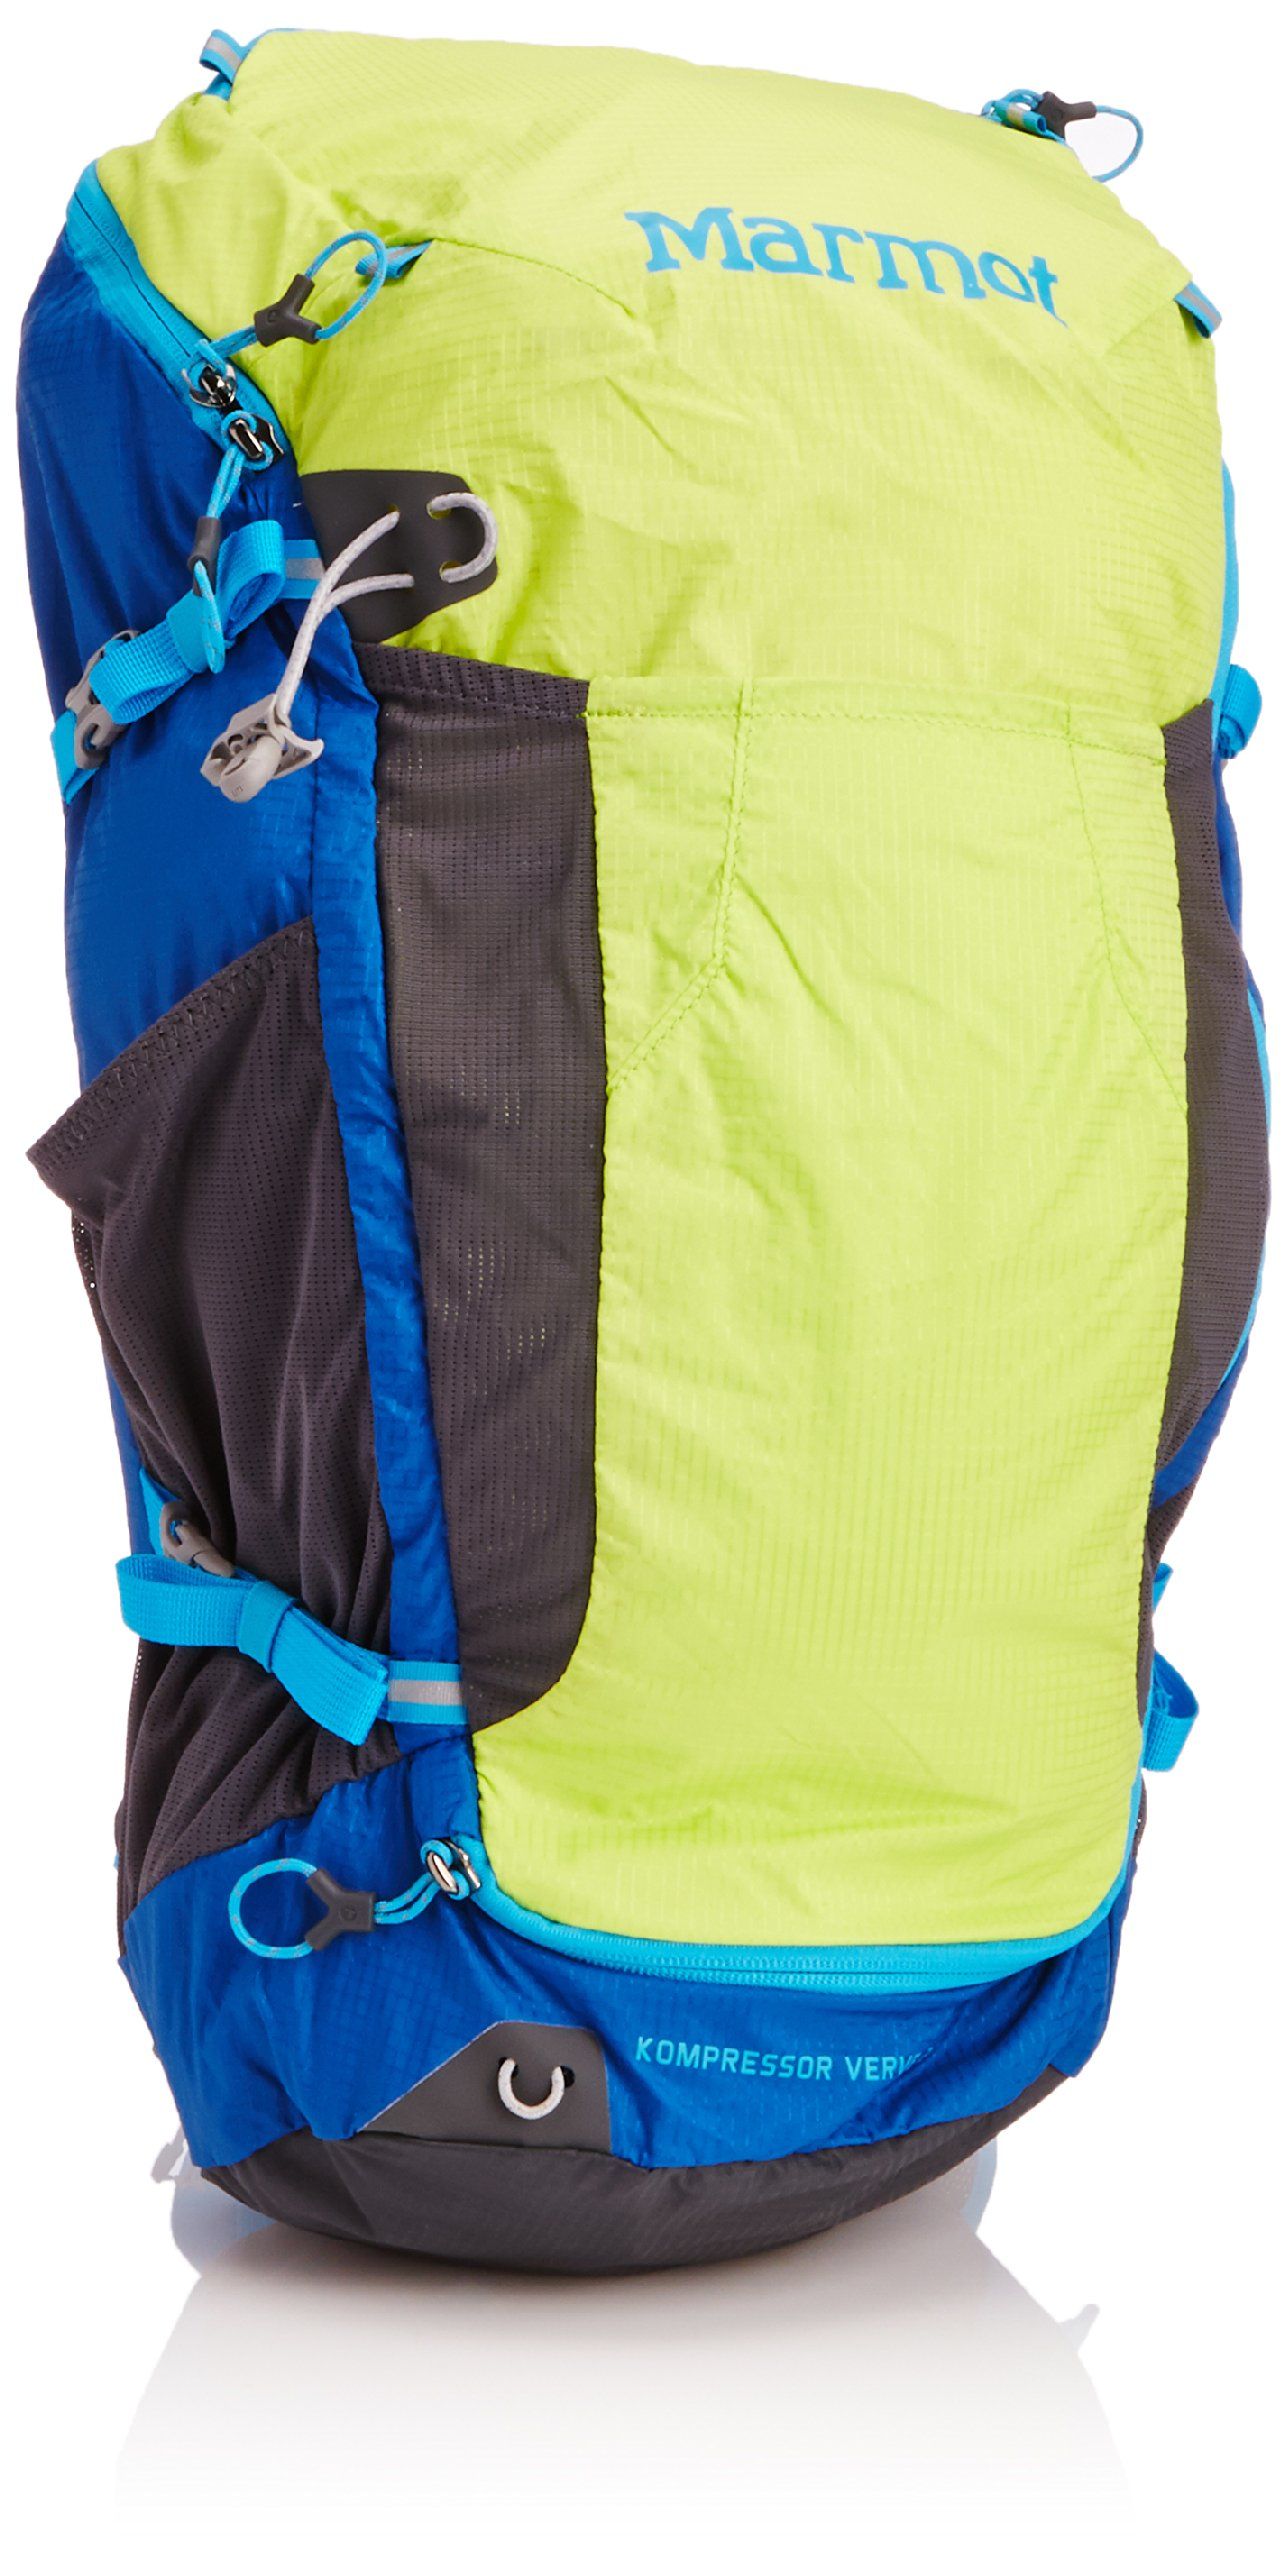 Marmot 26010 Mens Kompressor Verve 26 , Green Lime/Atomic Blue,Onesize by Marmot